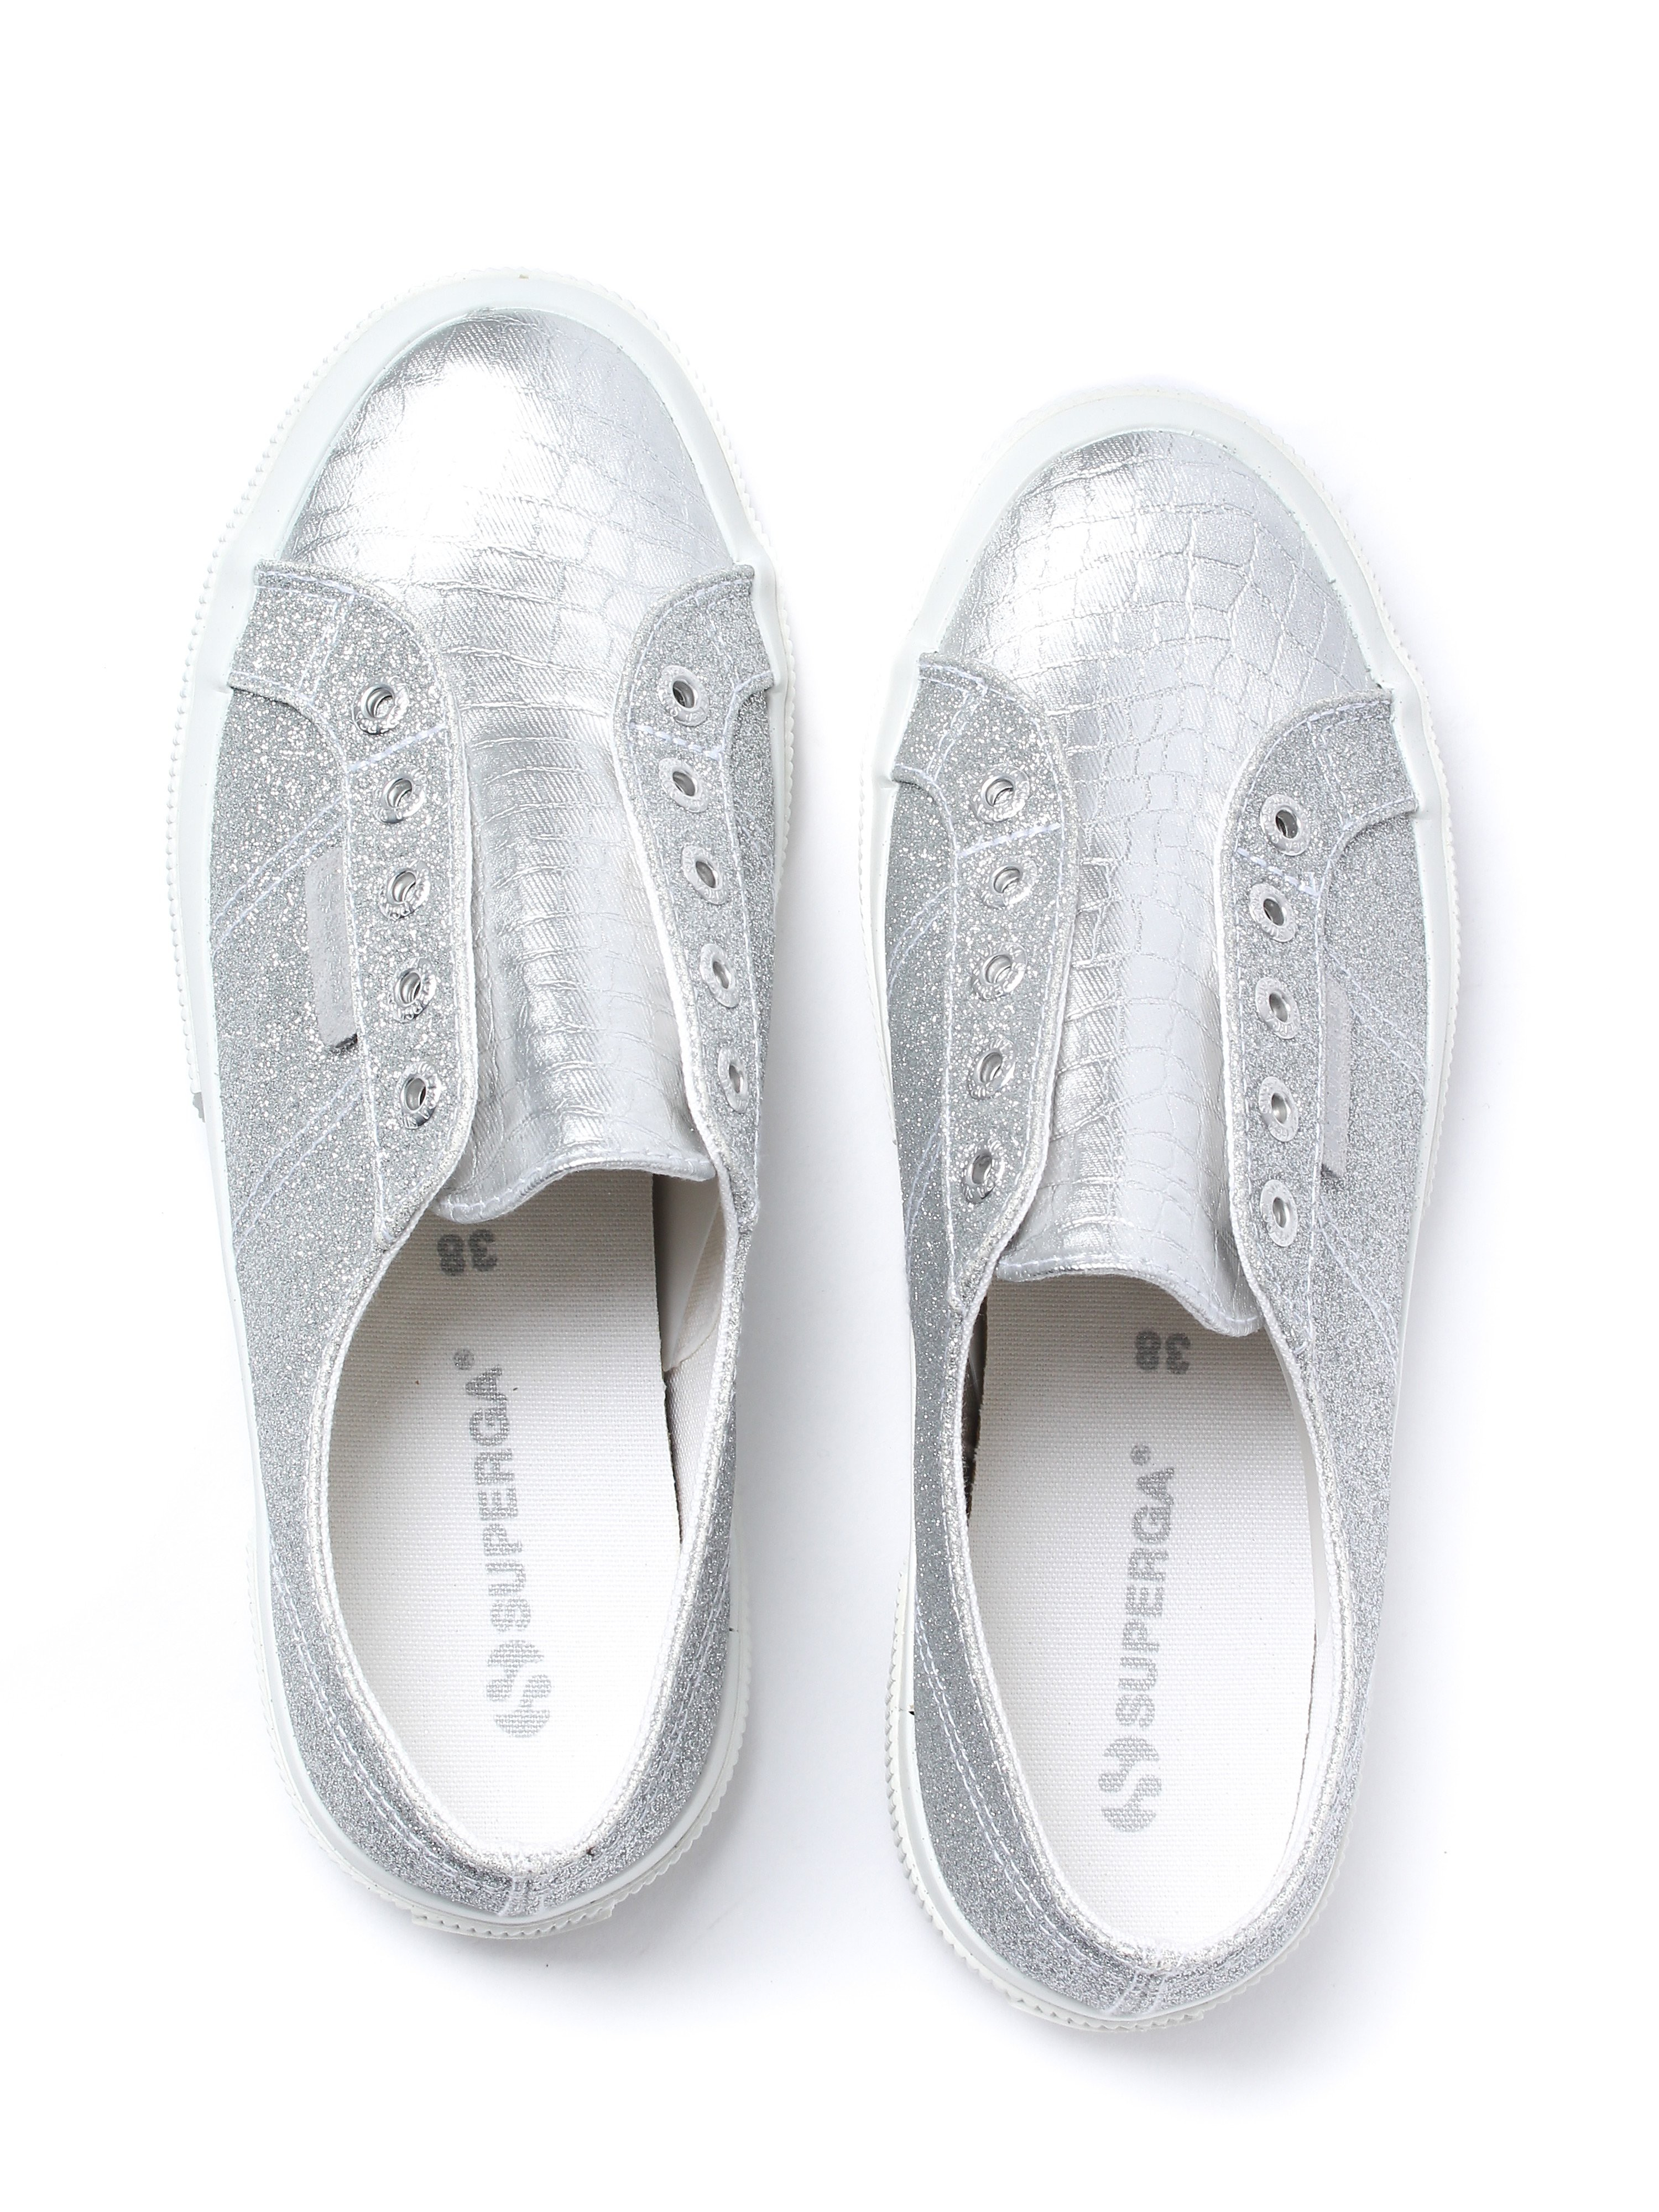 Superga Women's 2750 Microglitter Trainers - Grey Silver